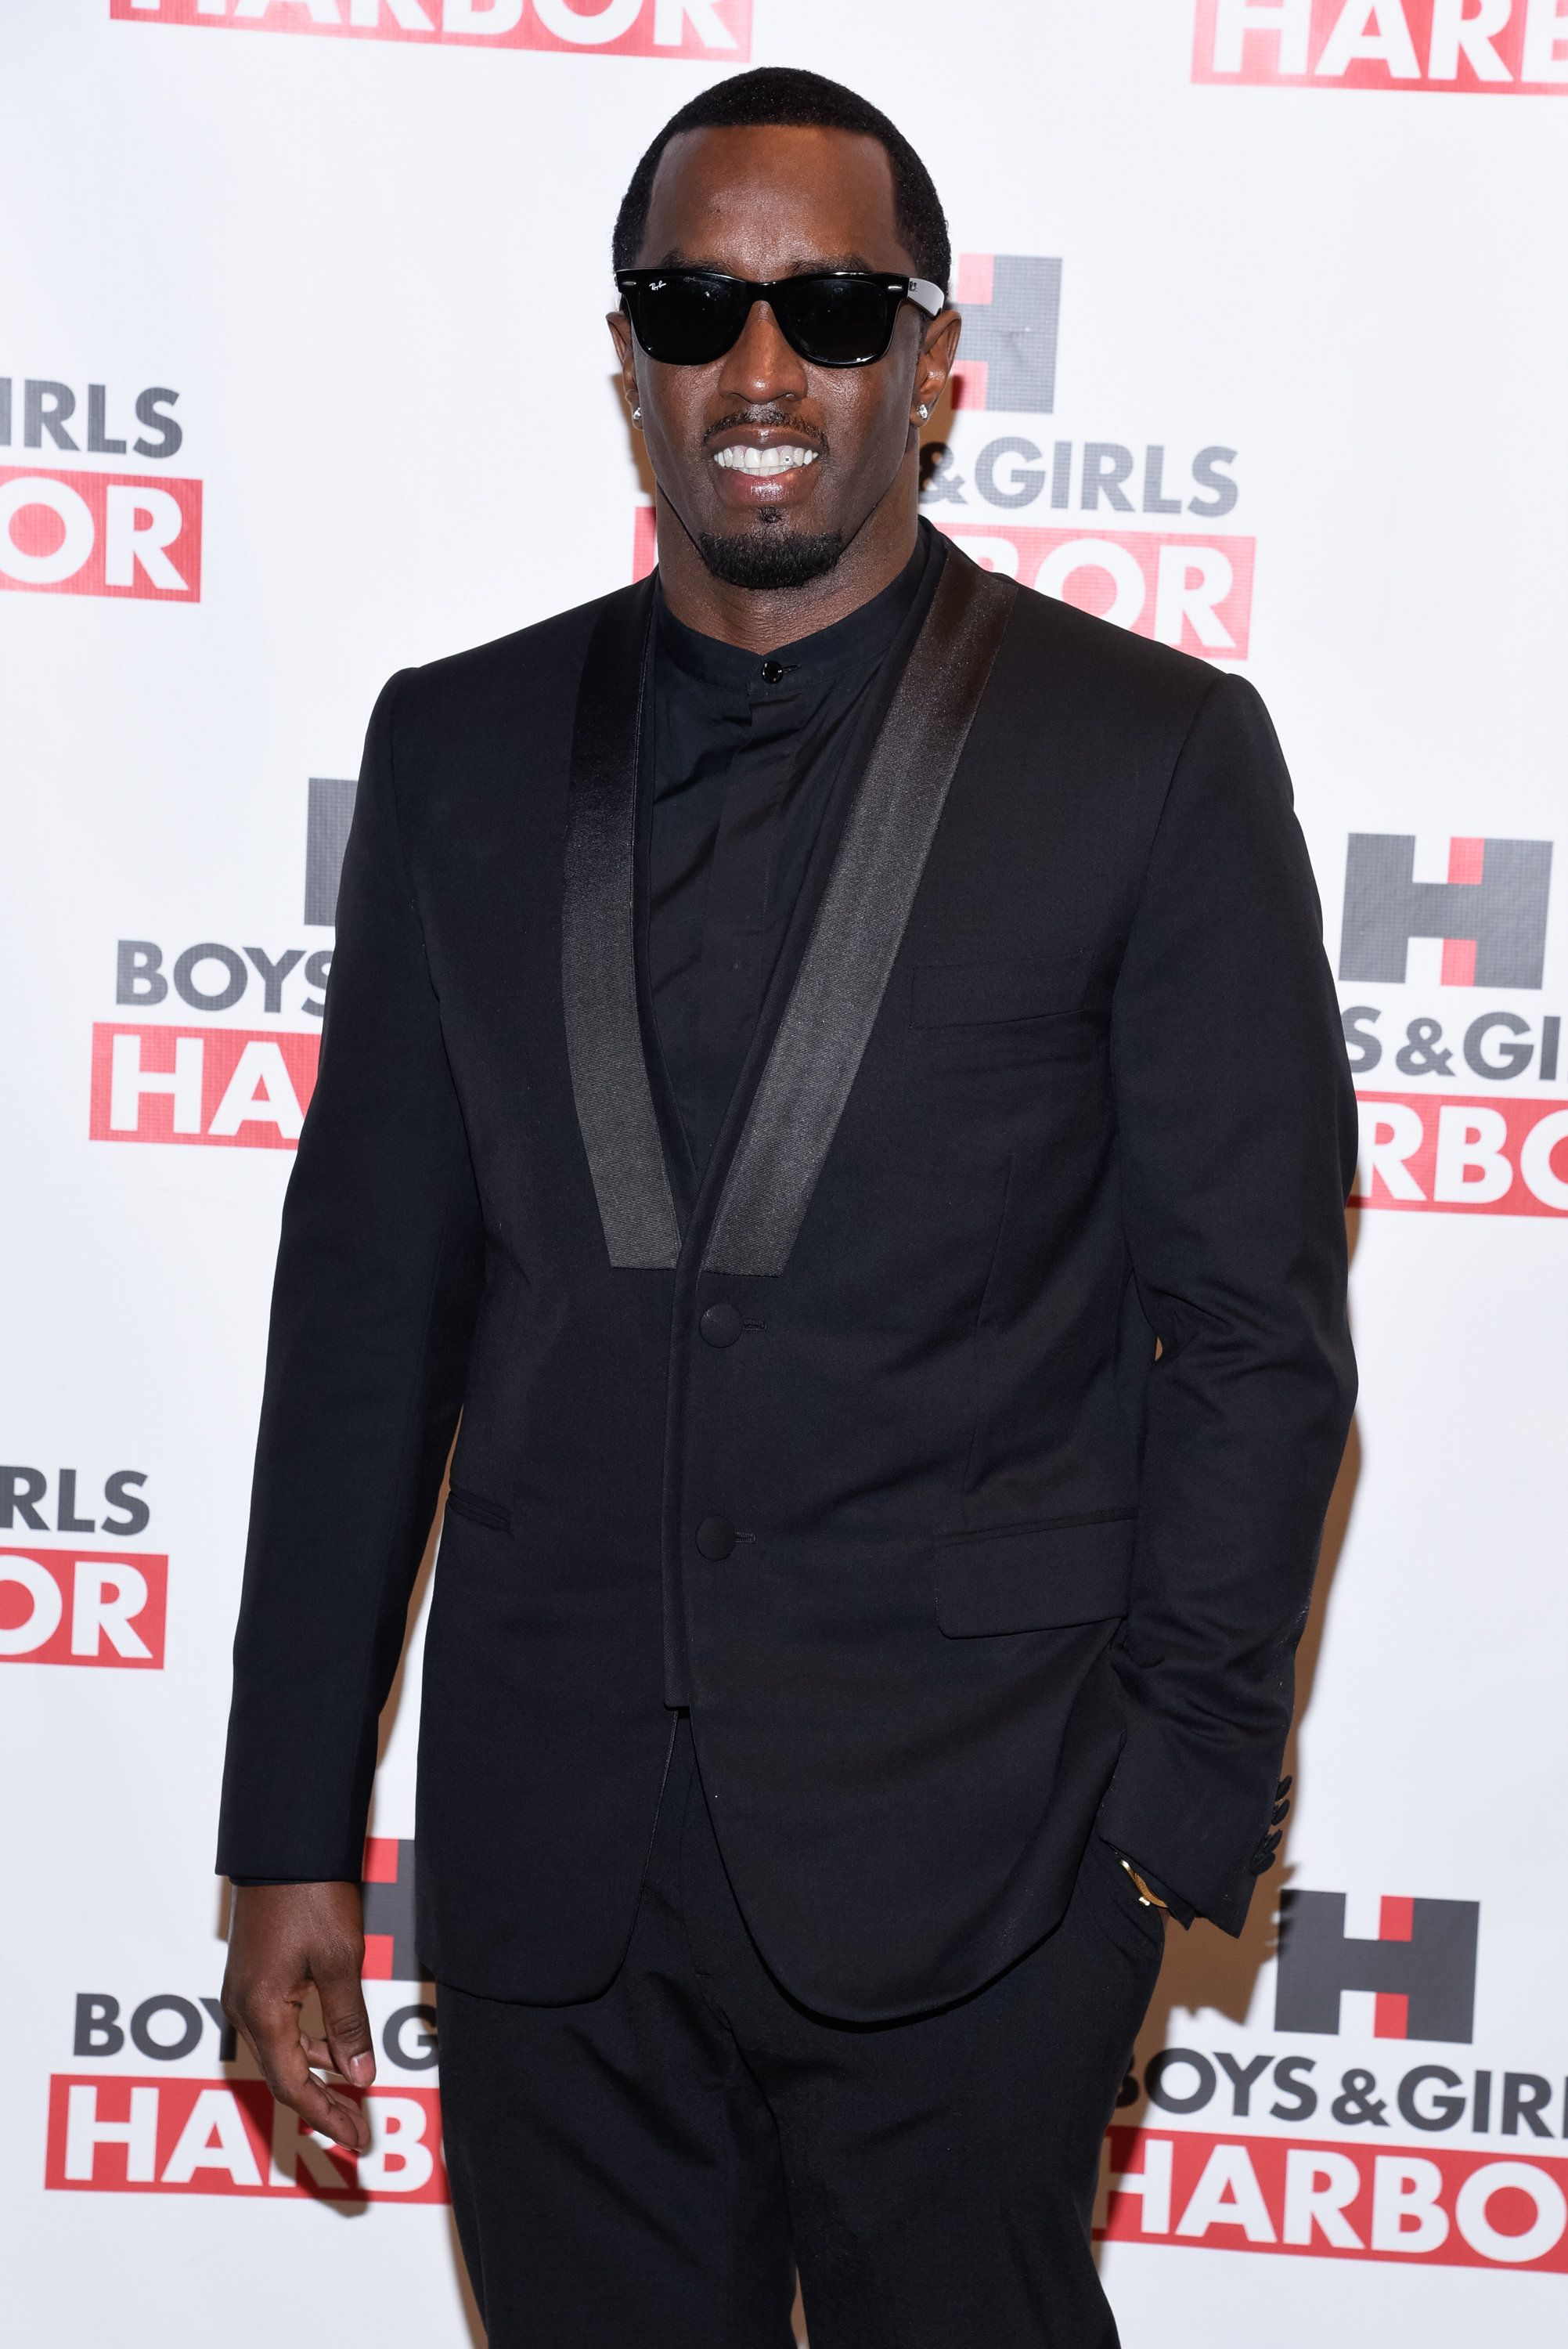 NEW YORK, NY - SEPTEMBER 26:  Sean 'Diddy' Combs attends the Boys & Girls Harbor Salute To Achievement at David H. Koch Theater, Lincoln Center on September 26, 2016 in New York City.  (Photo by Matthew Eisman/Getty Images)